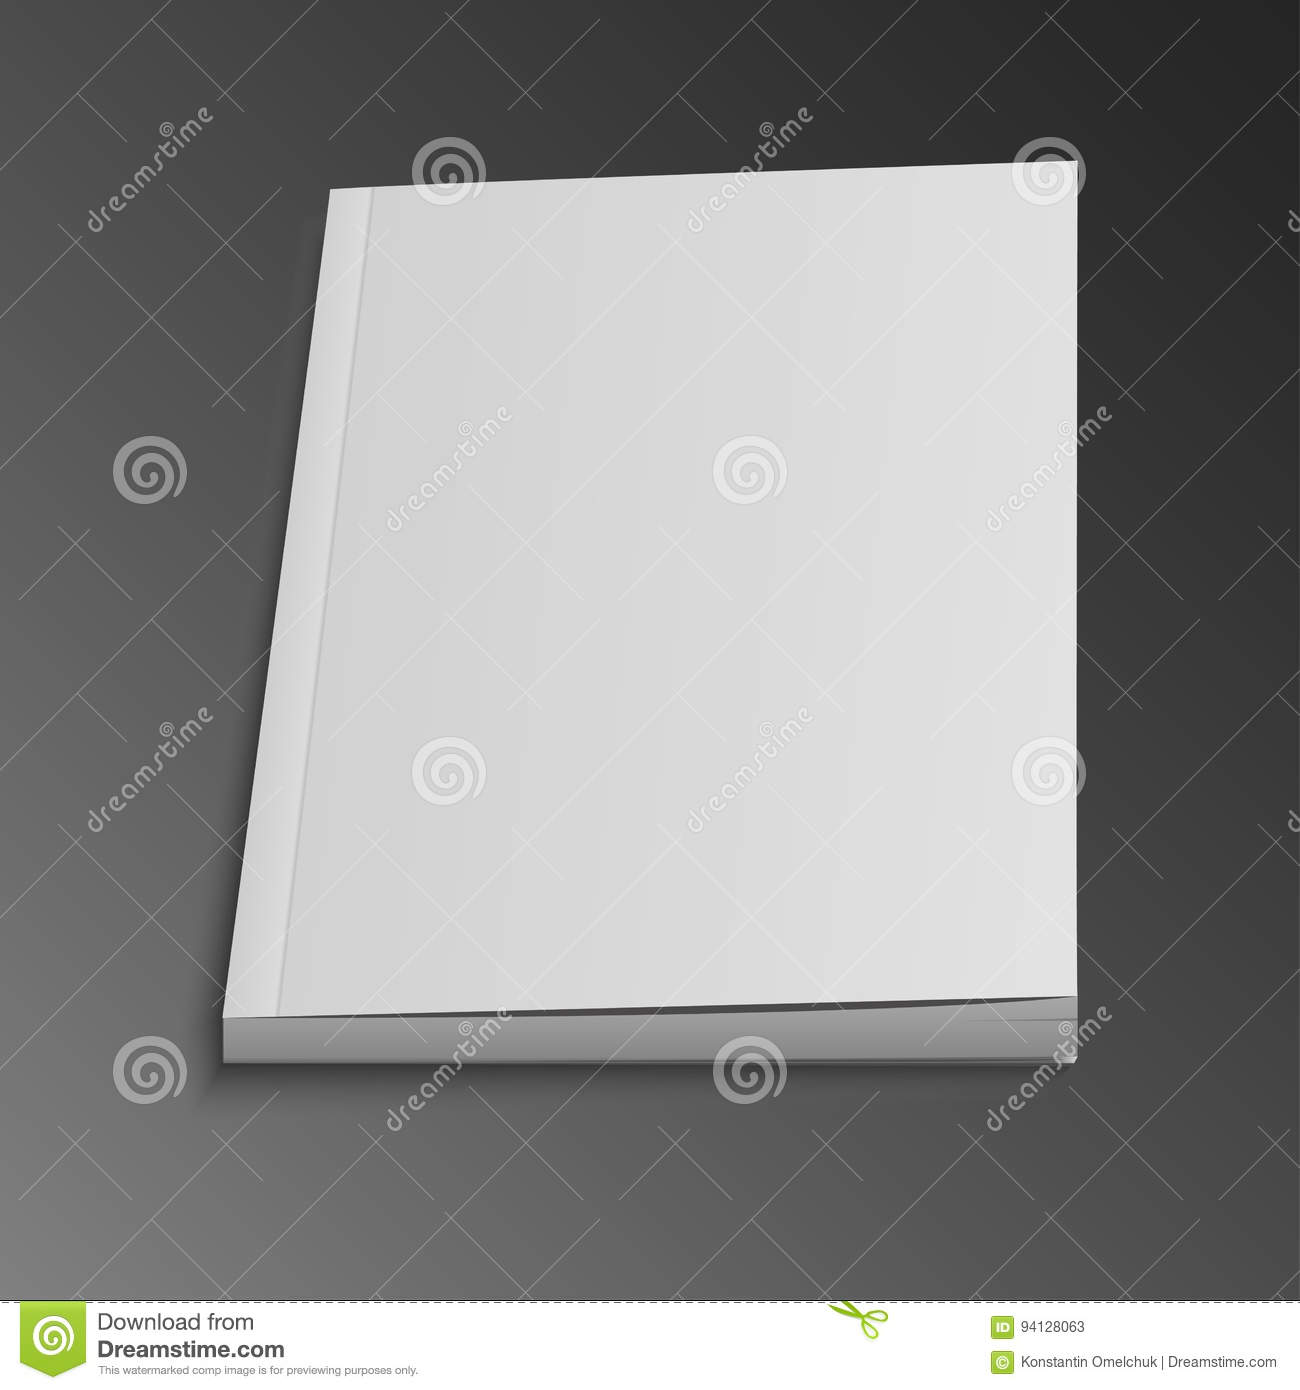 blank open magazine or book  mock up template ready for your design vector illustration